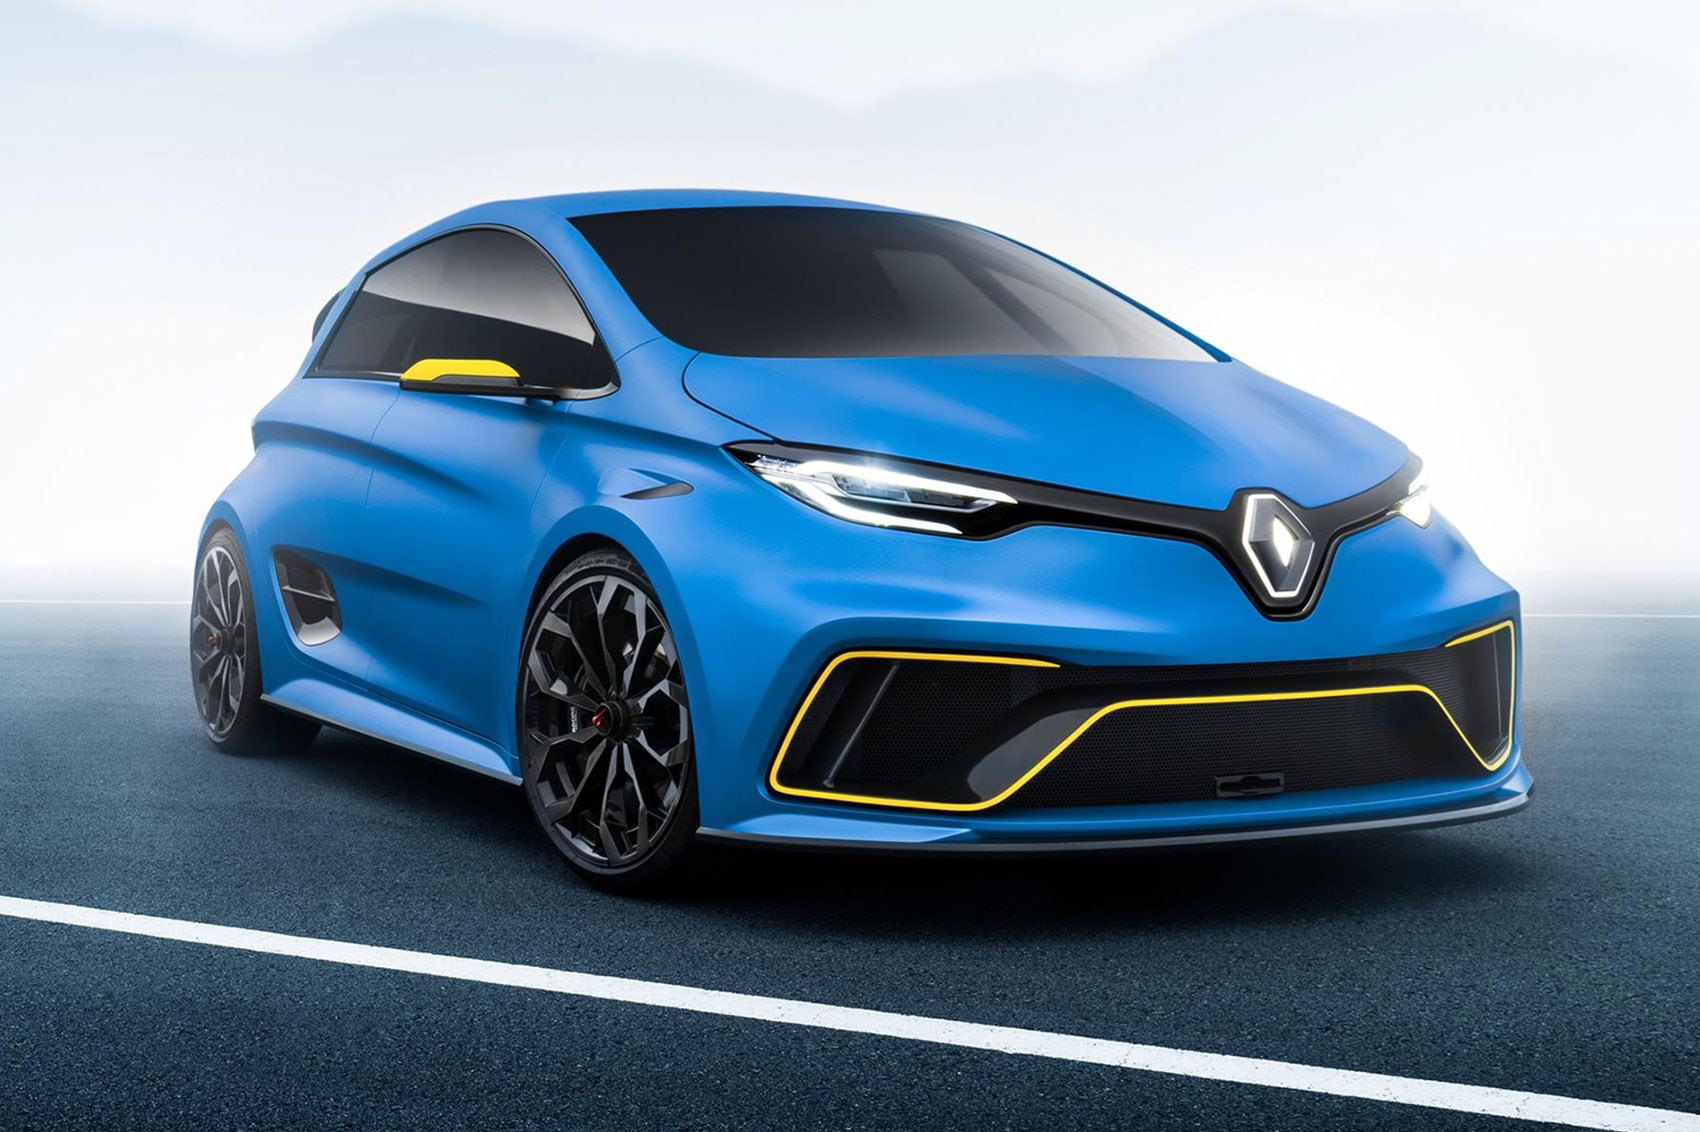 Coolest electric vehicle ever? Renault unveils ZOE e-sport concept